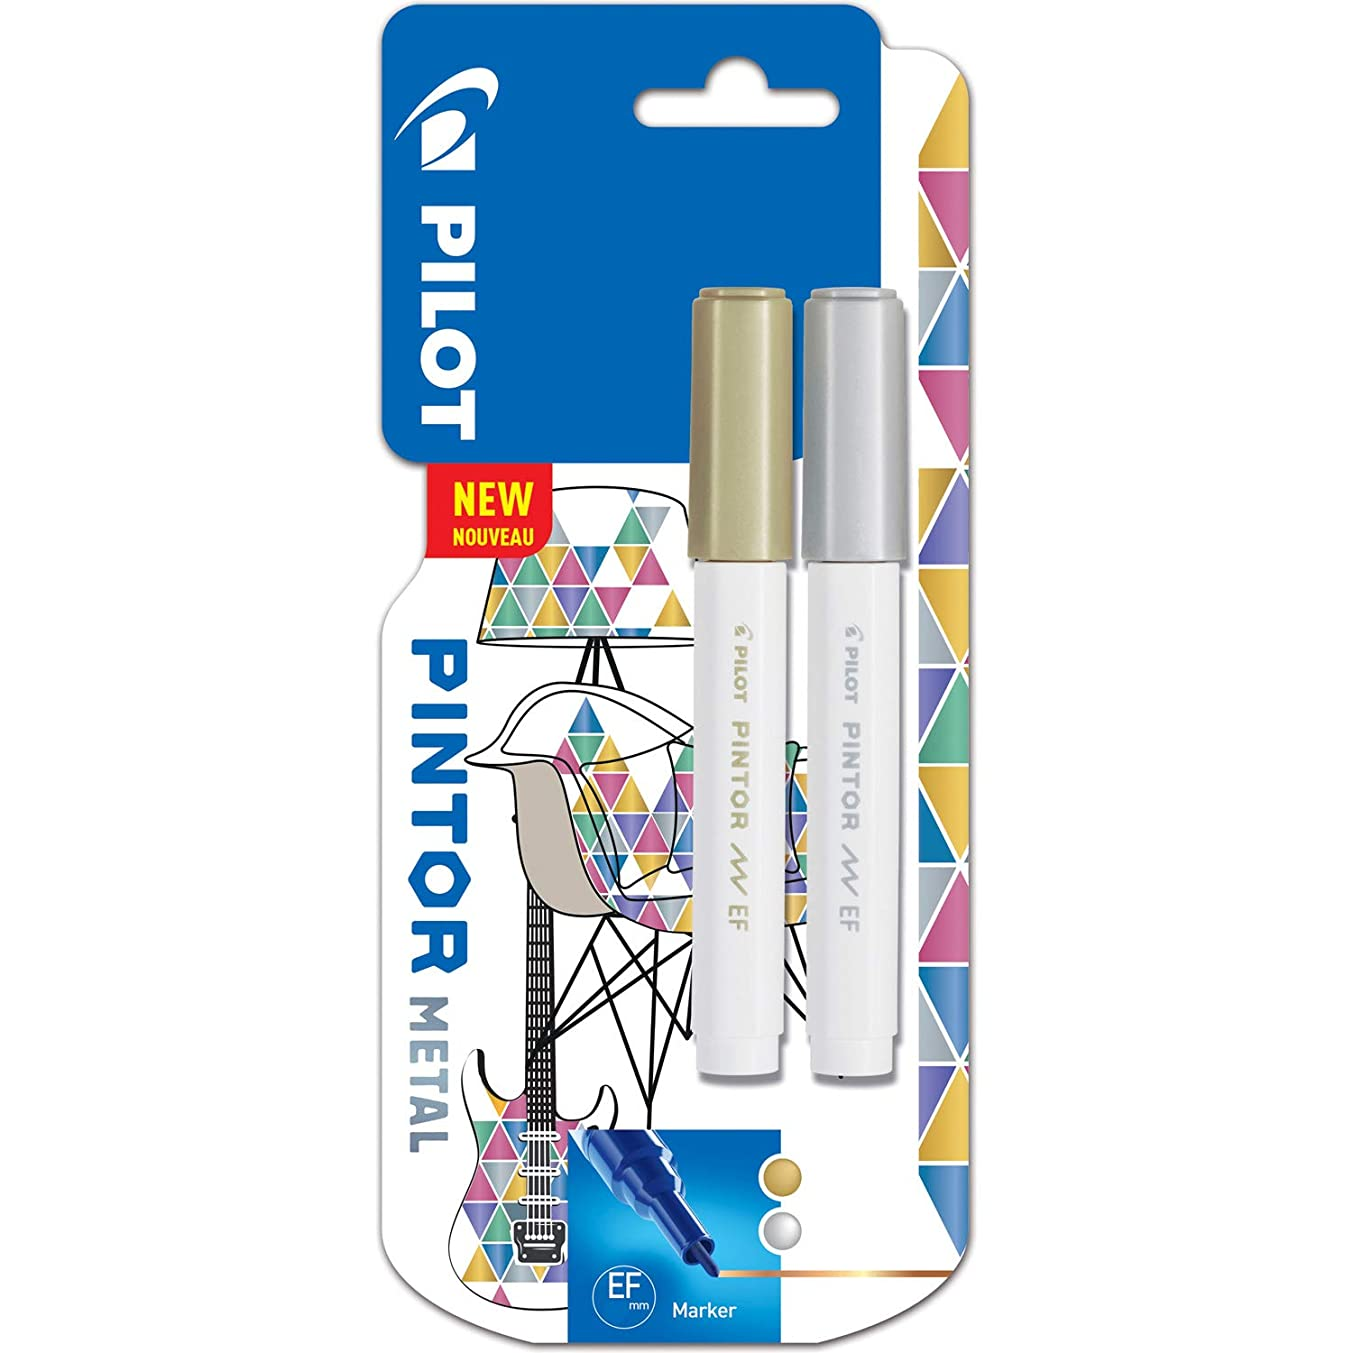 Pilot Pintor Fine Line Bullet Paint Marker 2.9mm Tip- Gold and Silver (Pack of 2)